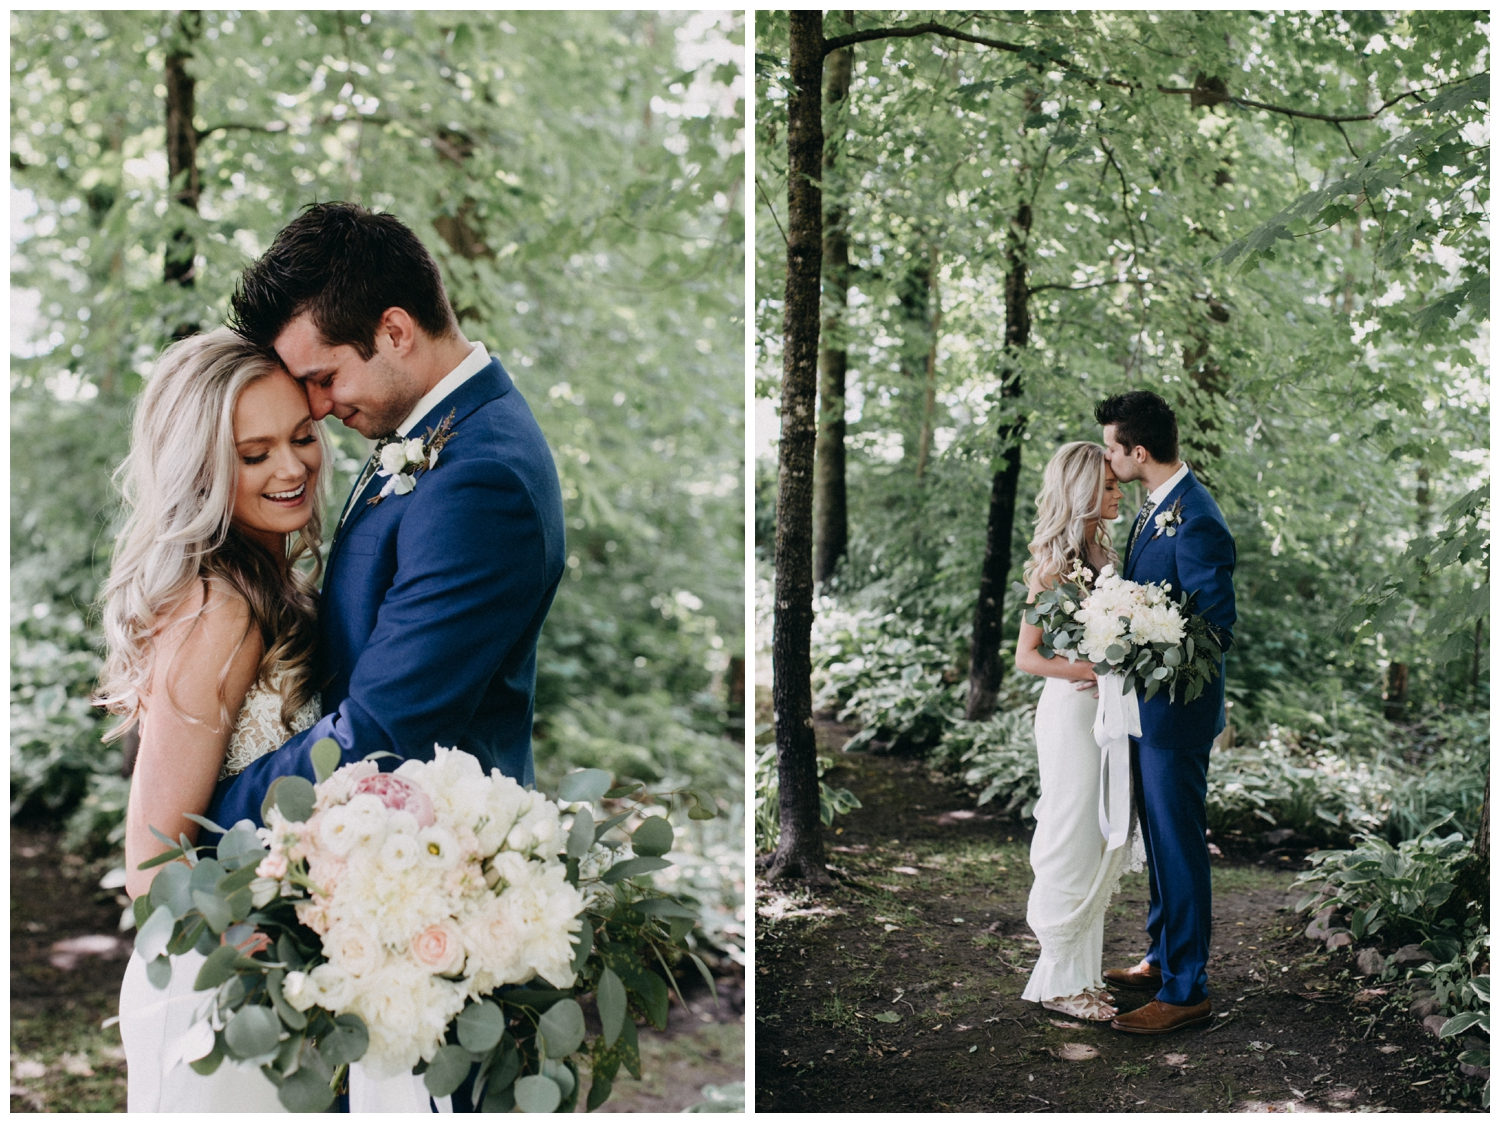 Minnesota barn wedding at Creekside Farm photographed by Britt DeZeeuw